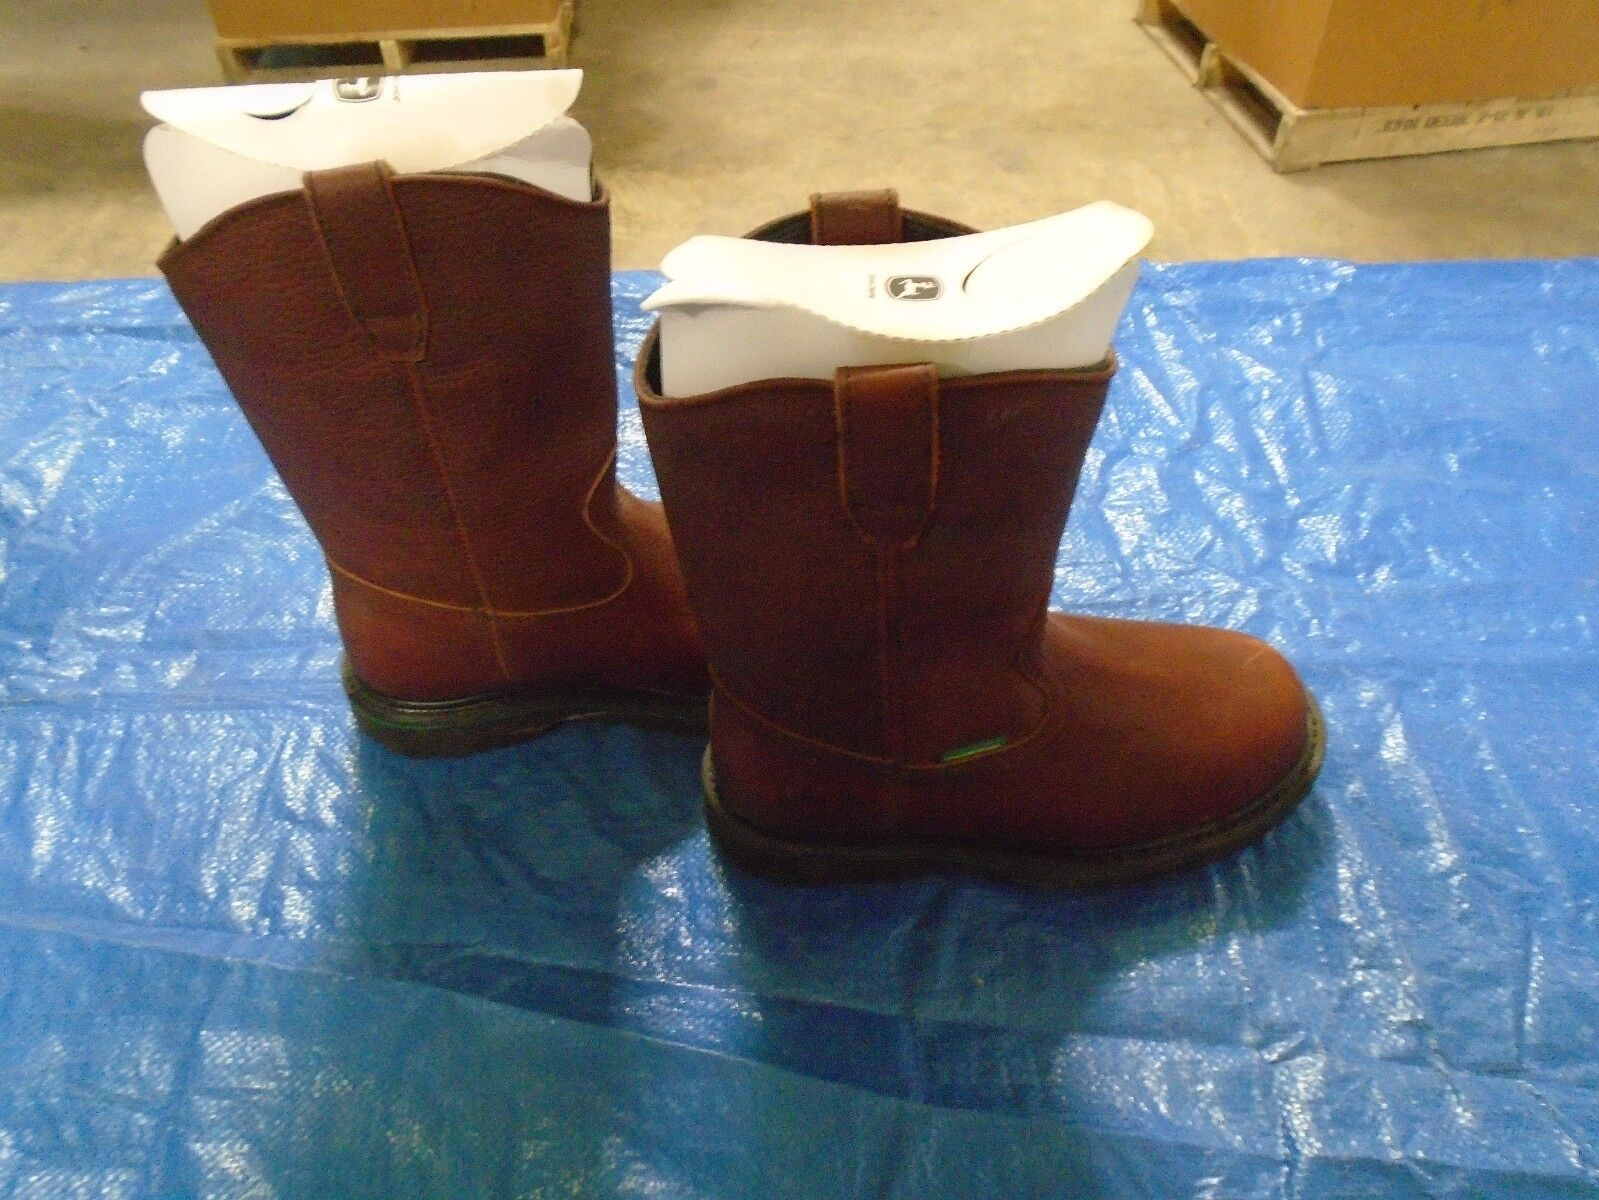 NEW DEALERS JOHN DEERE JD4283 Uomo SIZE SIZE SIZE 7 M DARK BROWN WATERPROOF PULL-ON BOOT a13224